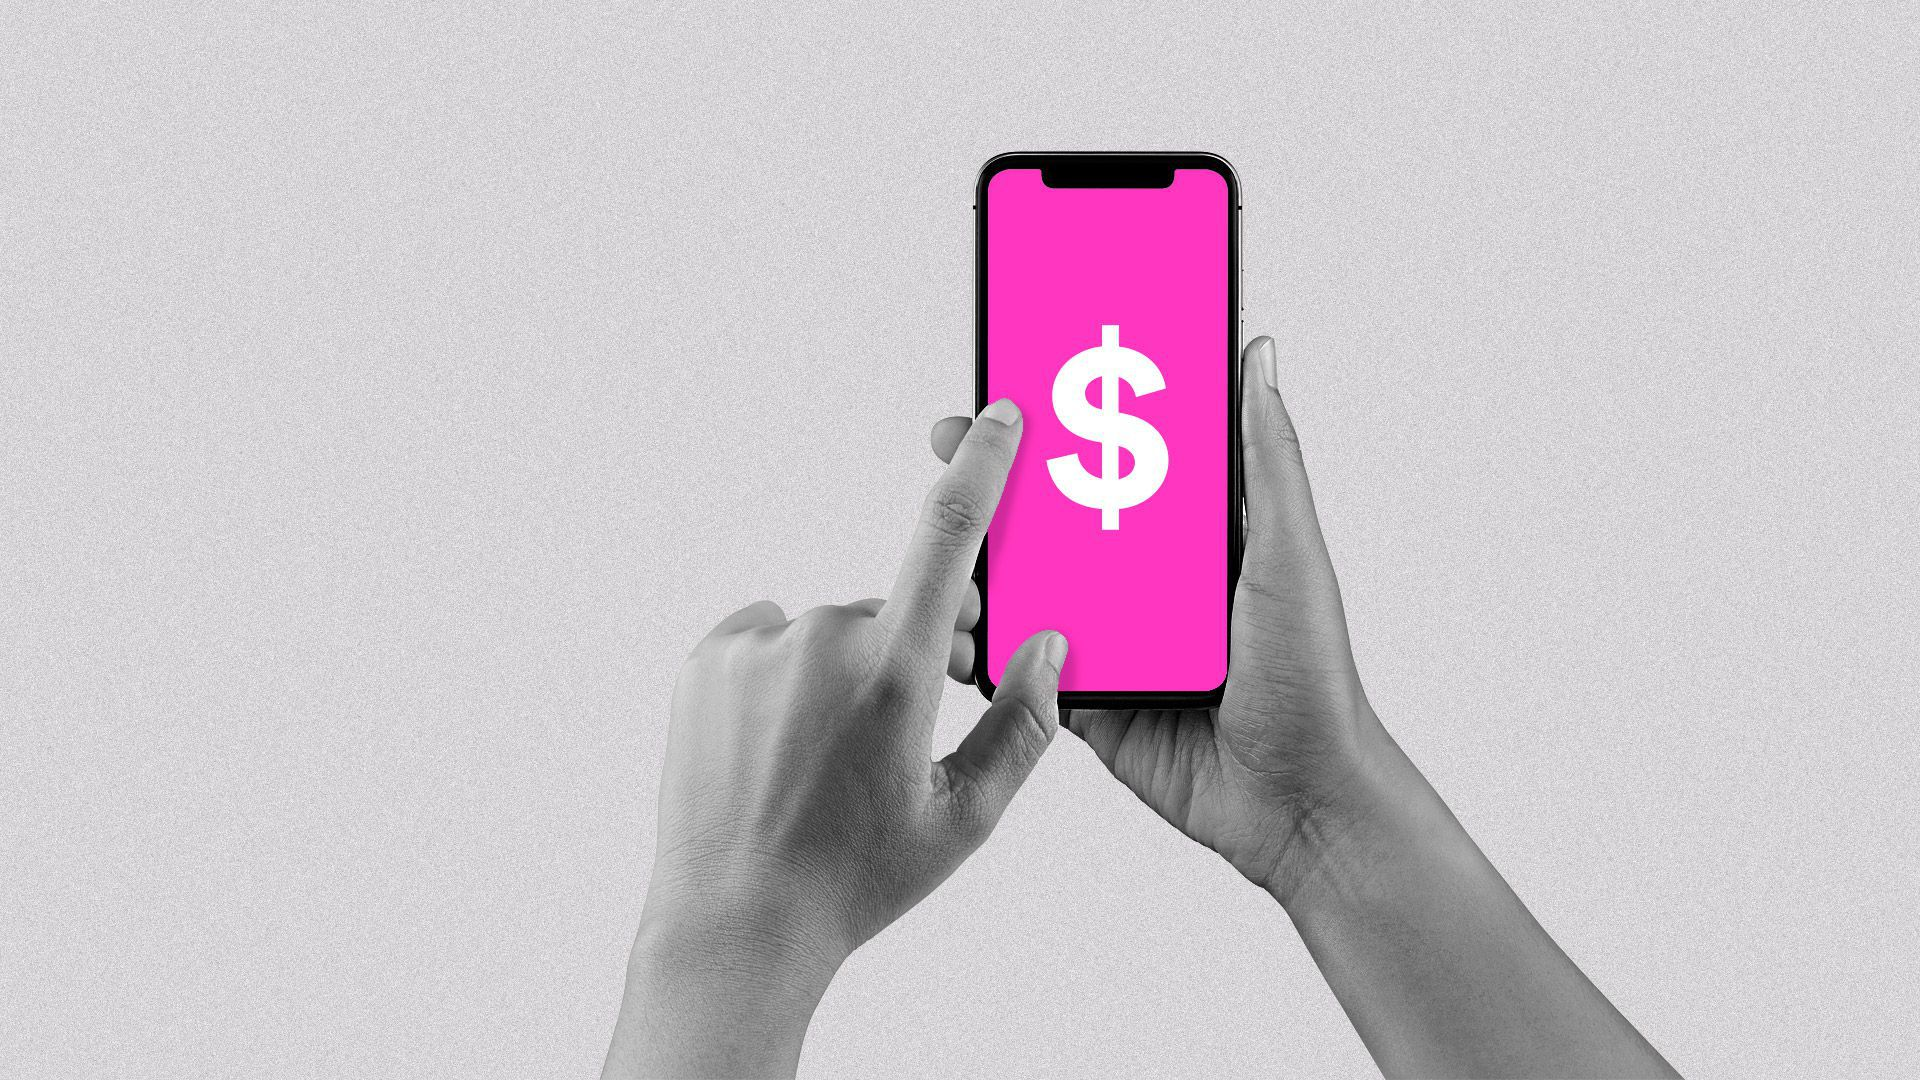 A hand holding a phone showing the Lyft app with a dollar sign